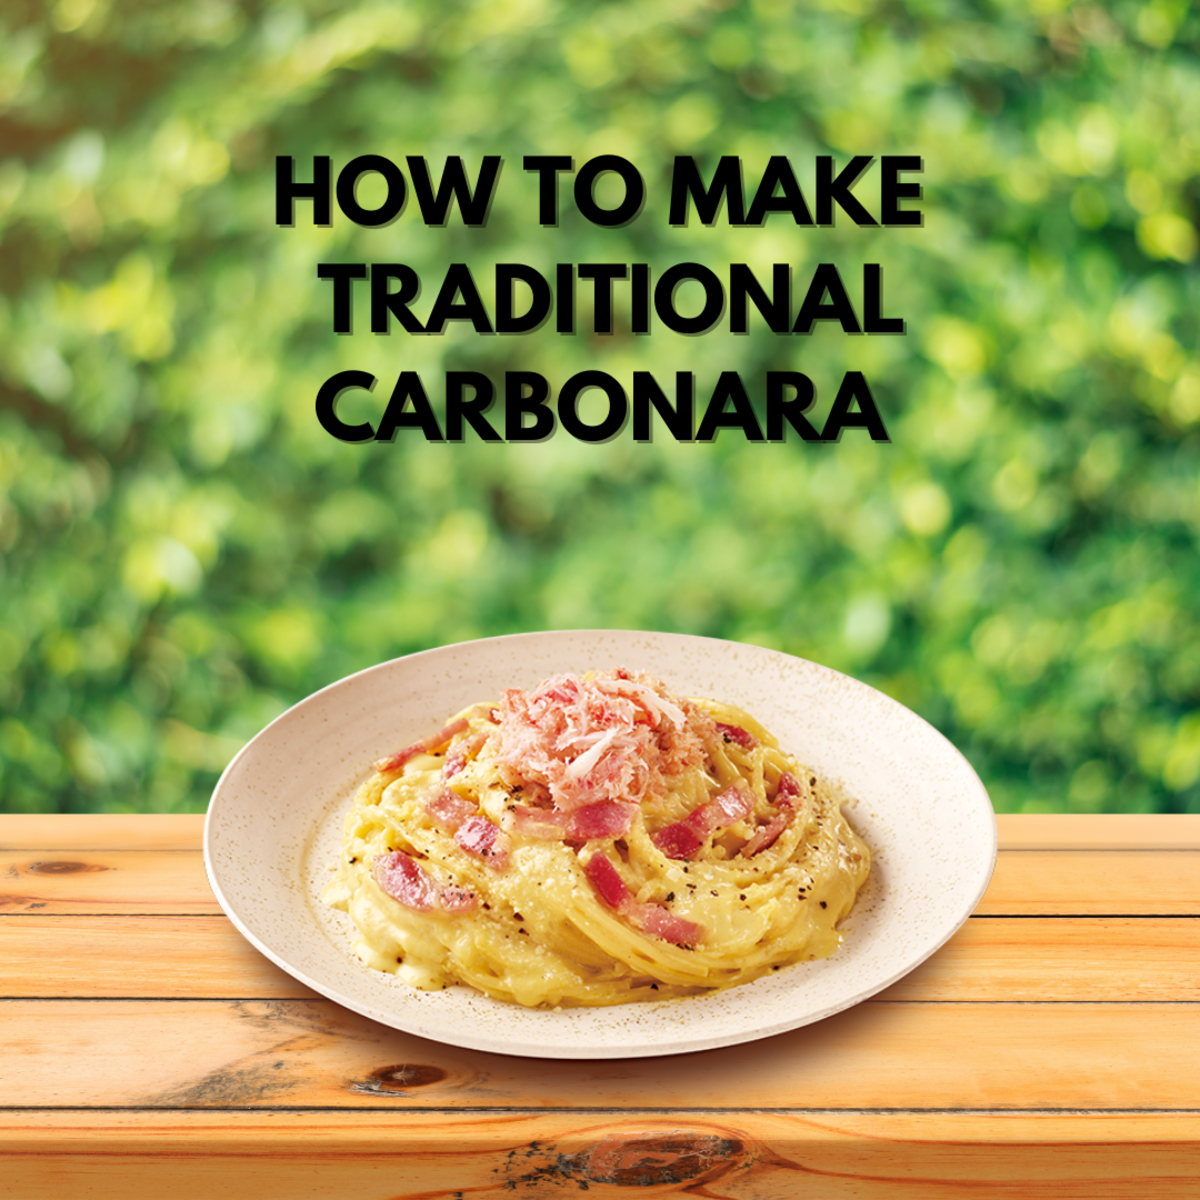 How to make Traditional Carbonara